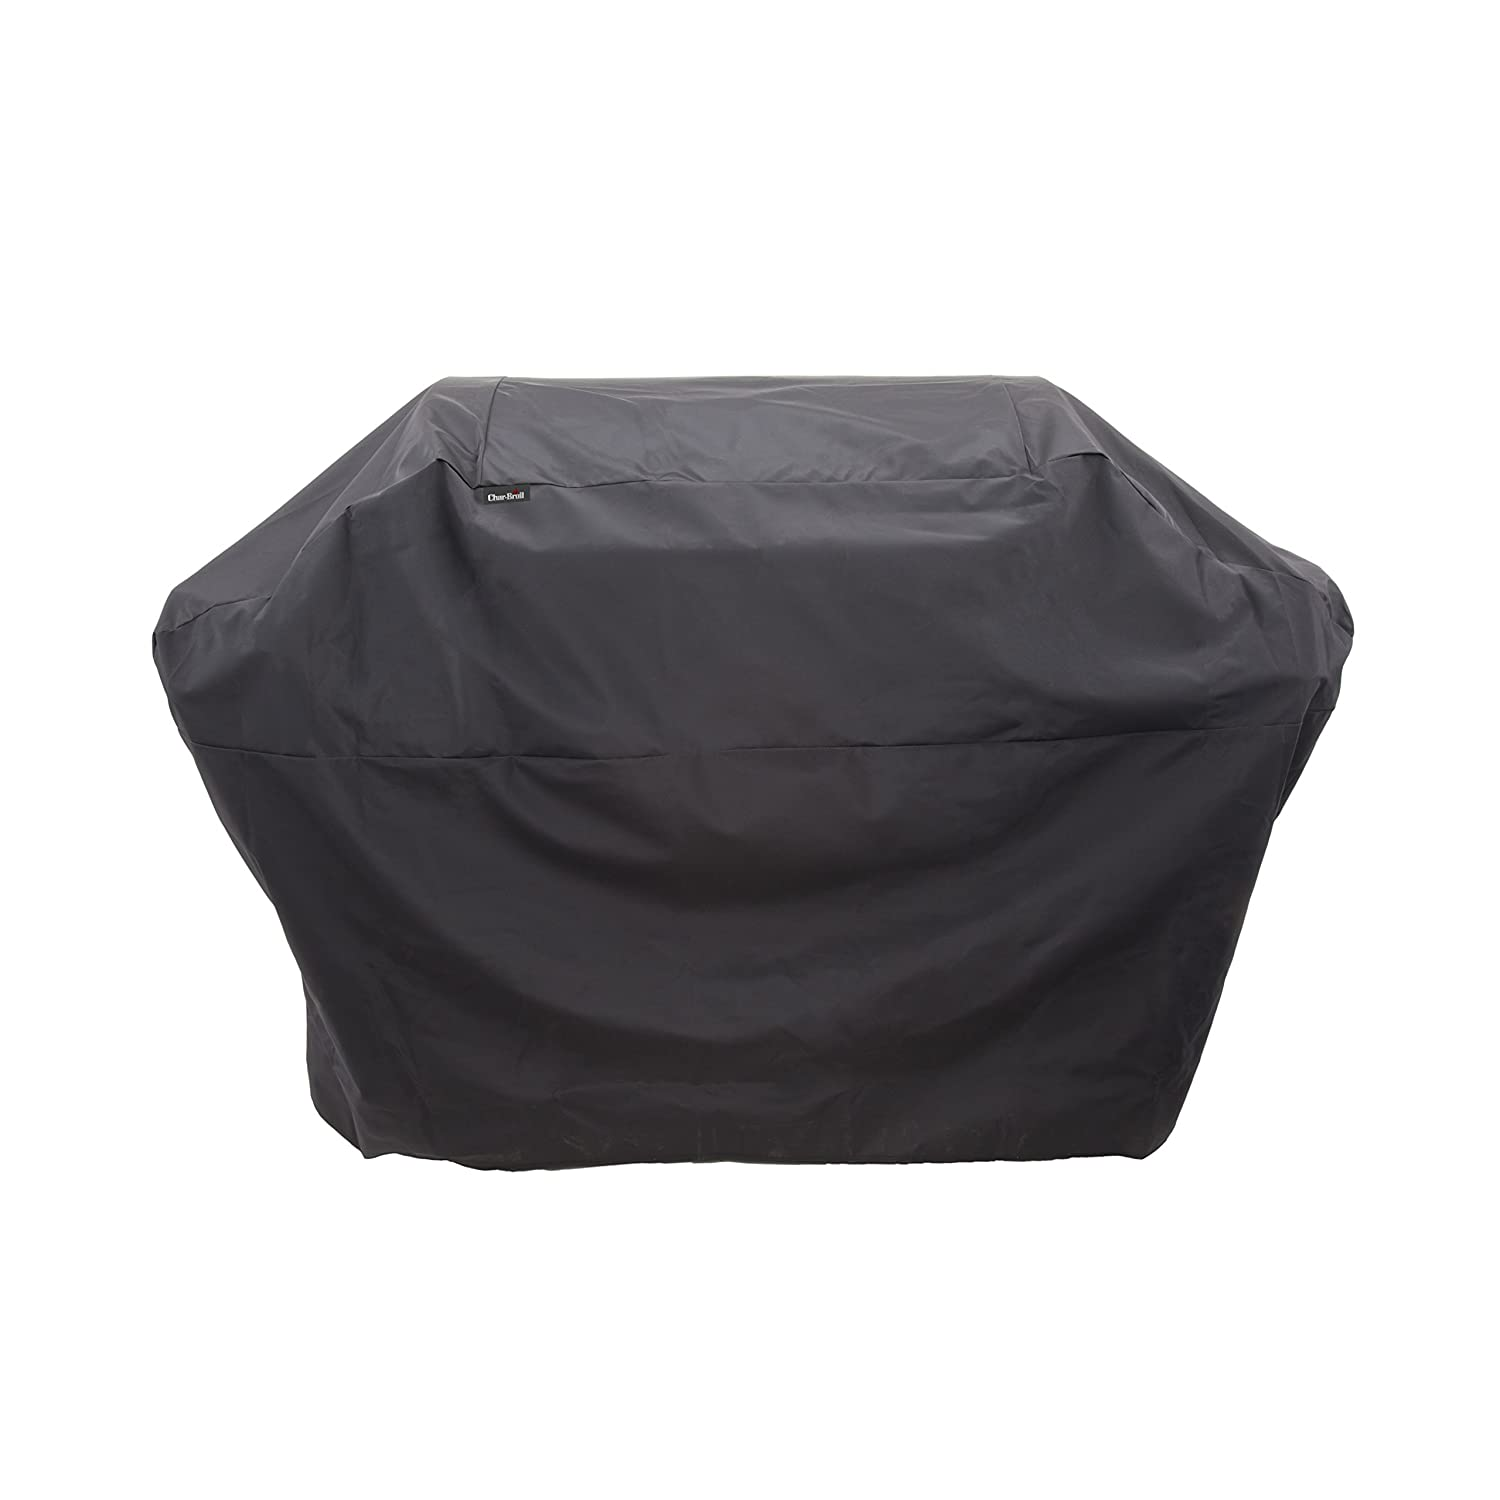 Amazon Com Char Broil 5 Burner Extra Large Rip Stop Grill Cover